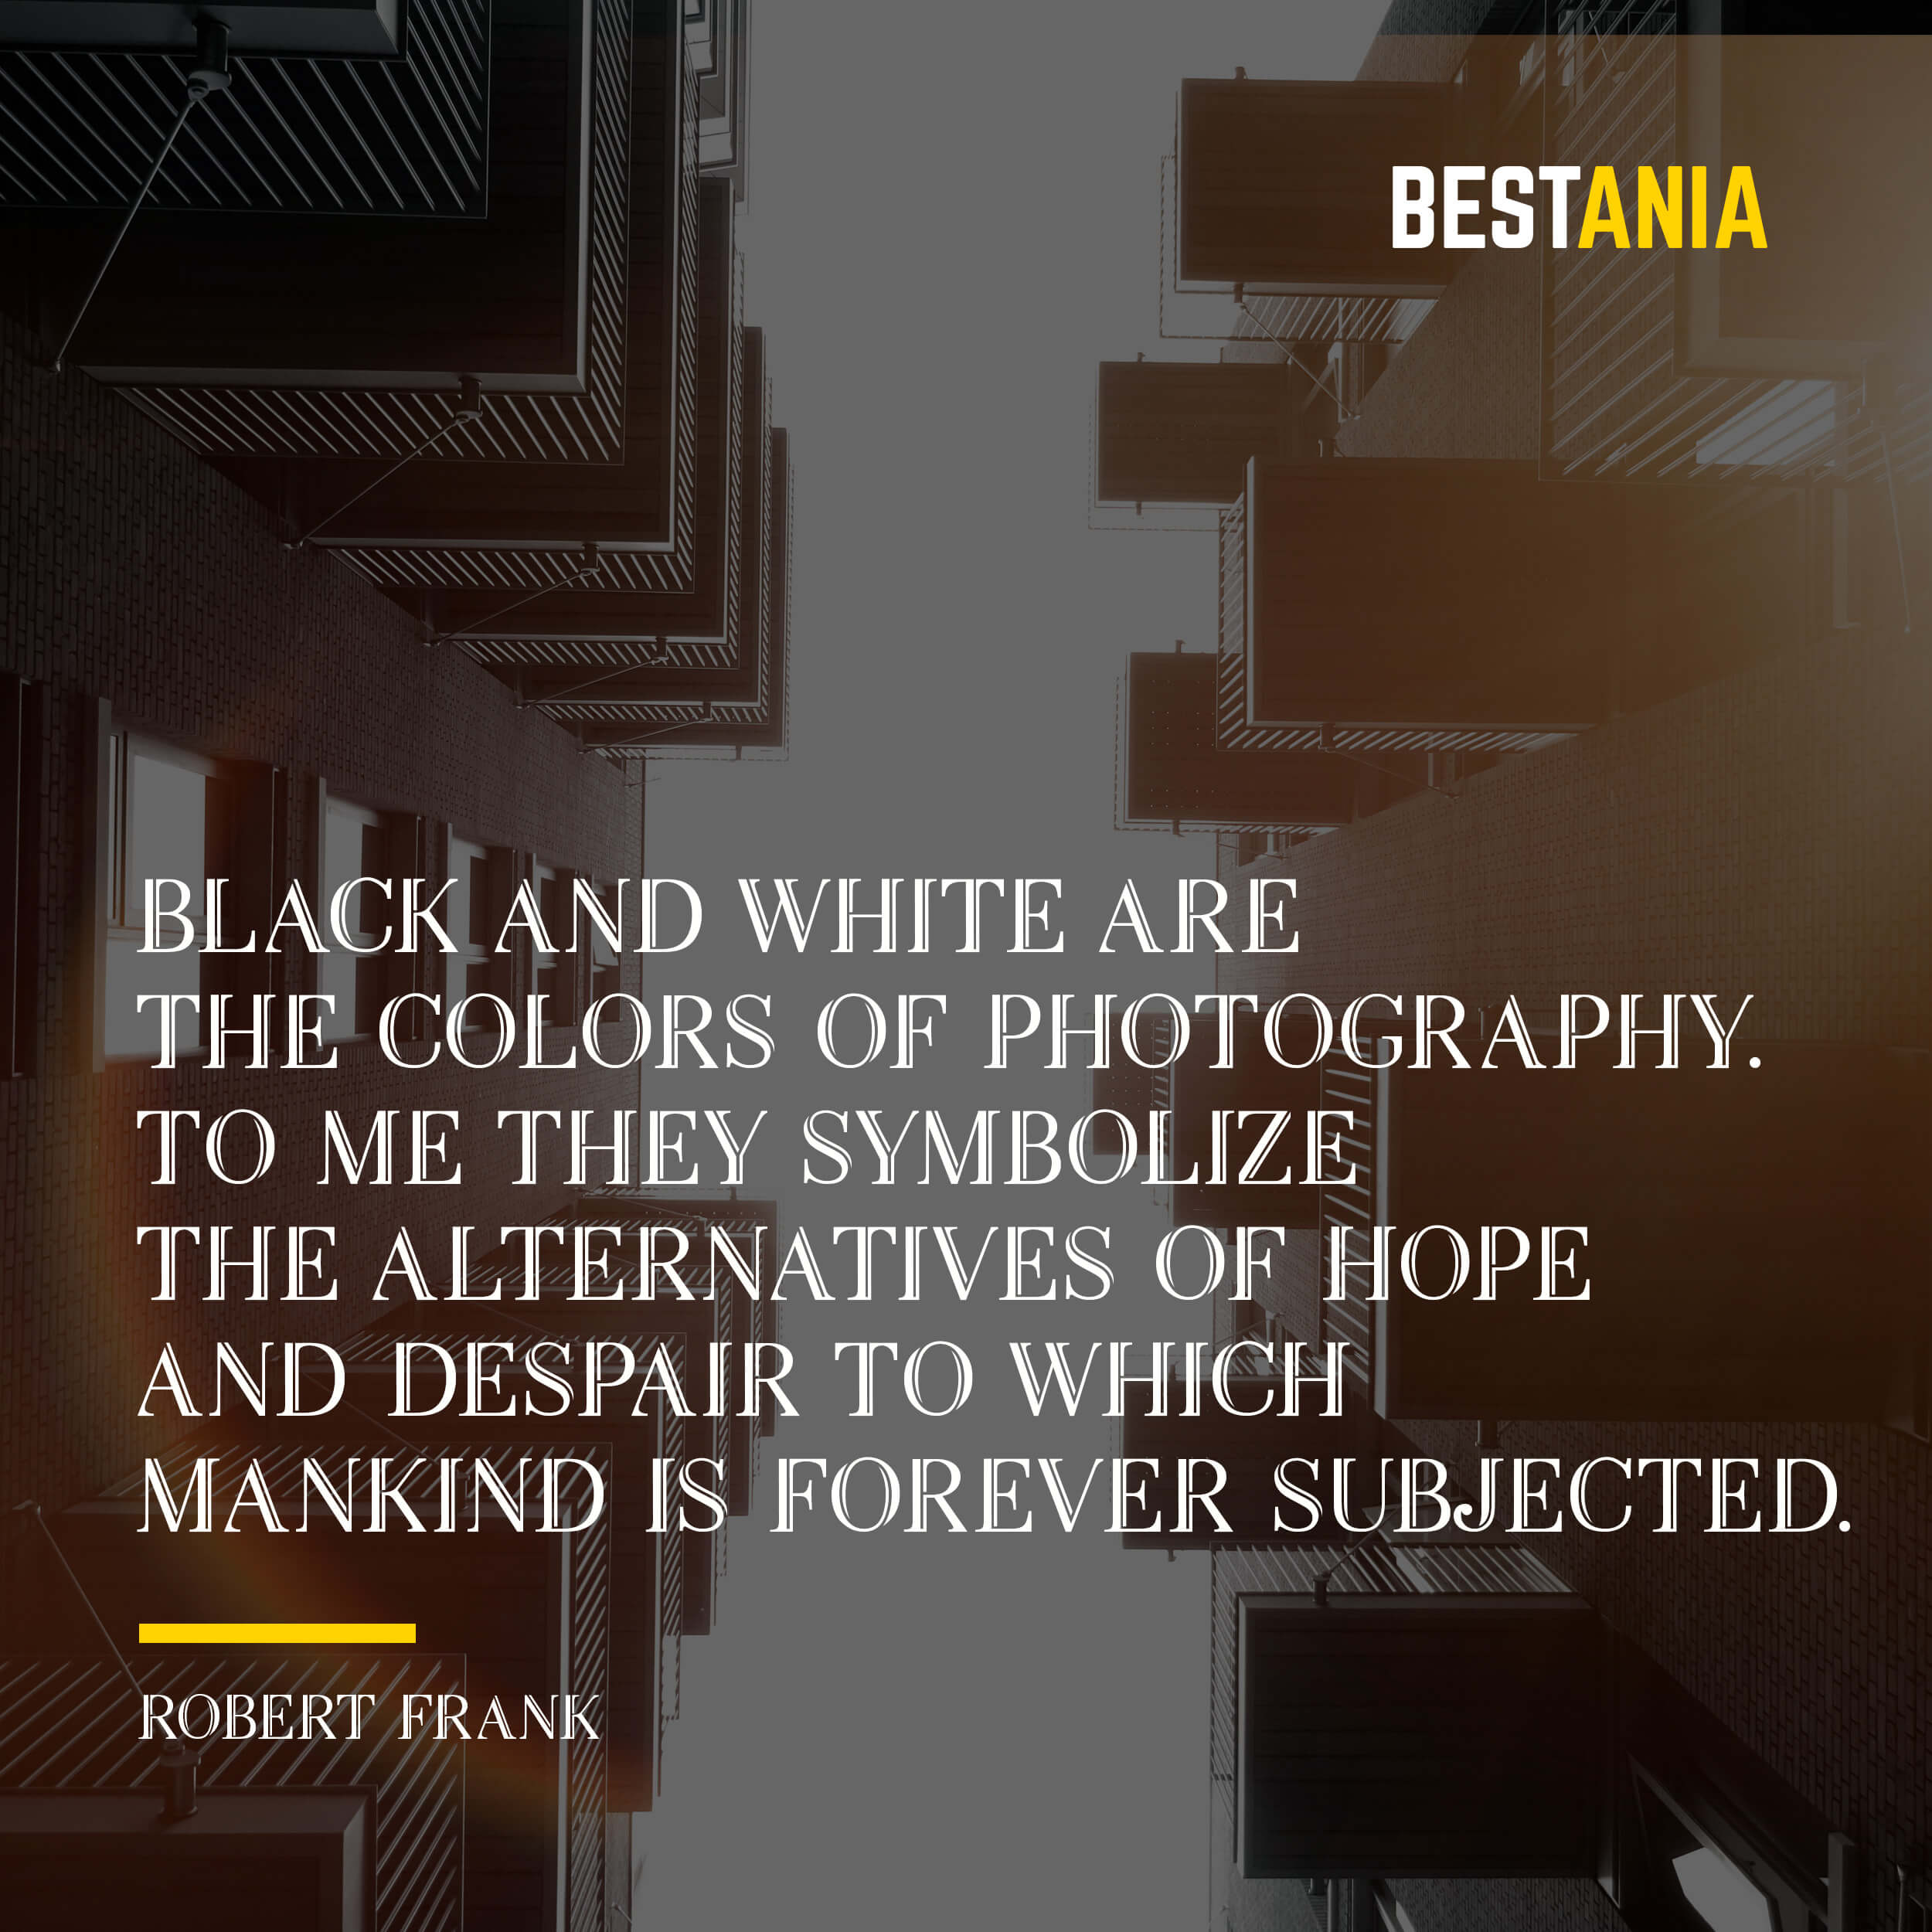 """""""BLACK AND WHITE ARE THE COLORS OF PHOTOGRAPHY. TO ME, THEY SYMBOLIZE THE ALTERNATIVES OF HOPE AND DESPAIR TO WHICH MANKIND IS FOREVER SUBJECTED."""" ROBERT FRANK"""